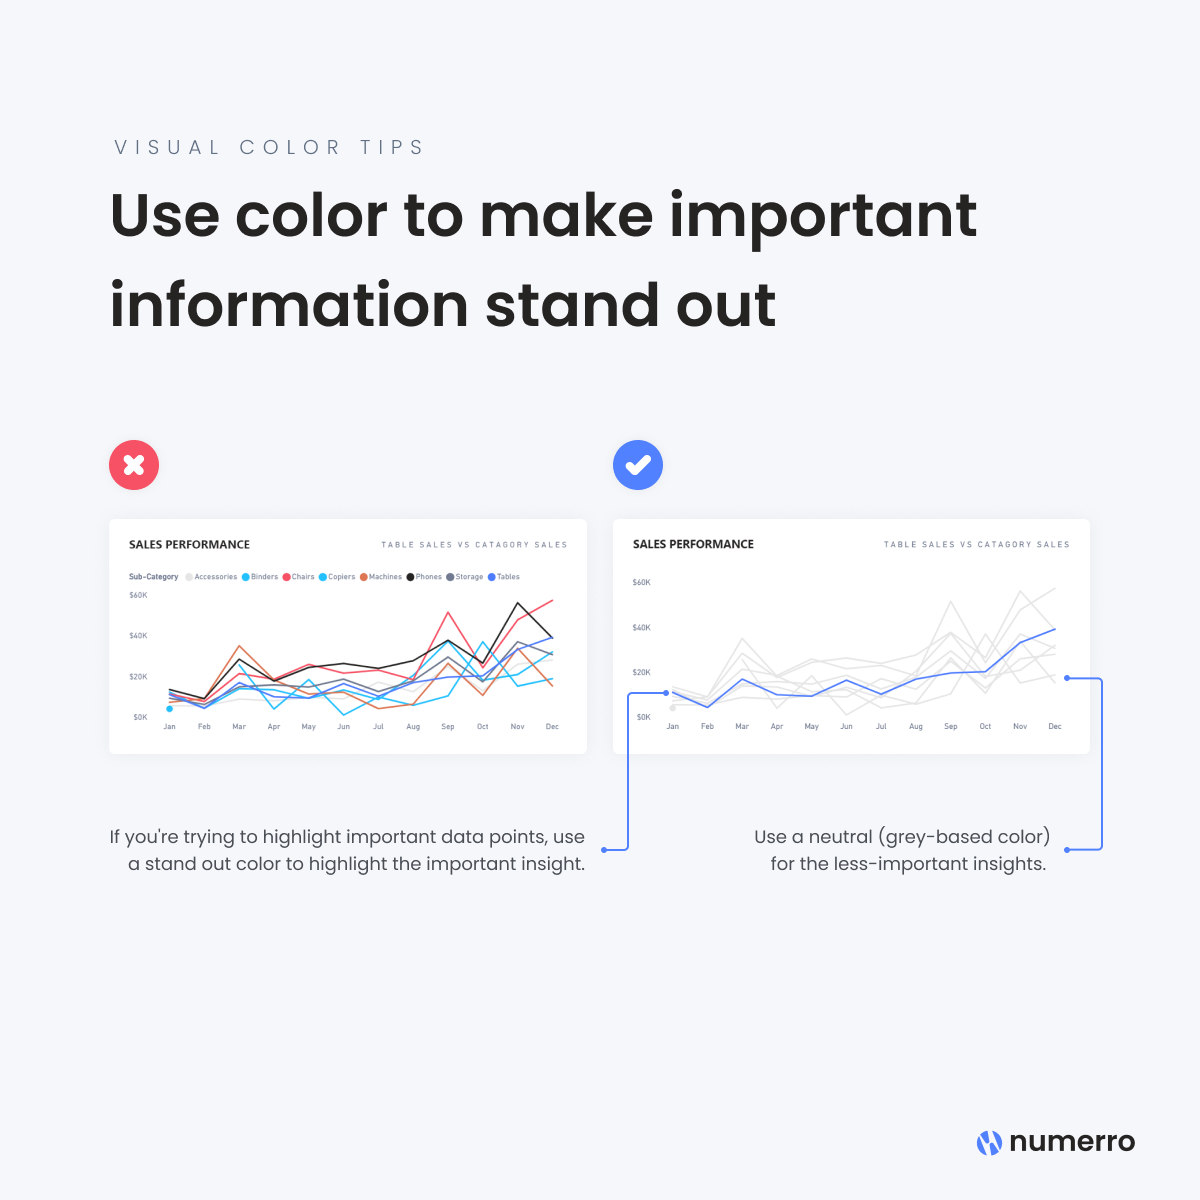 Use Color to Make Important Information Stand Out